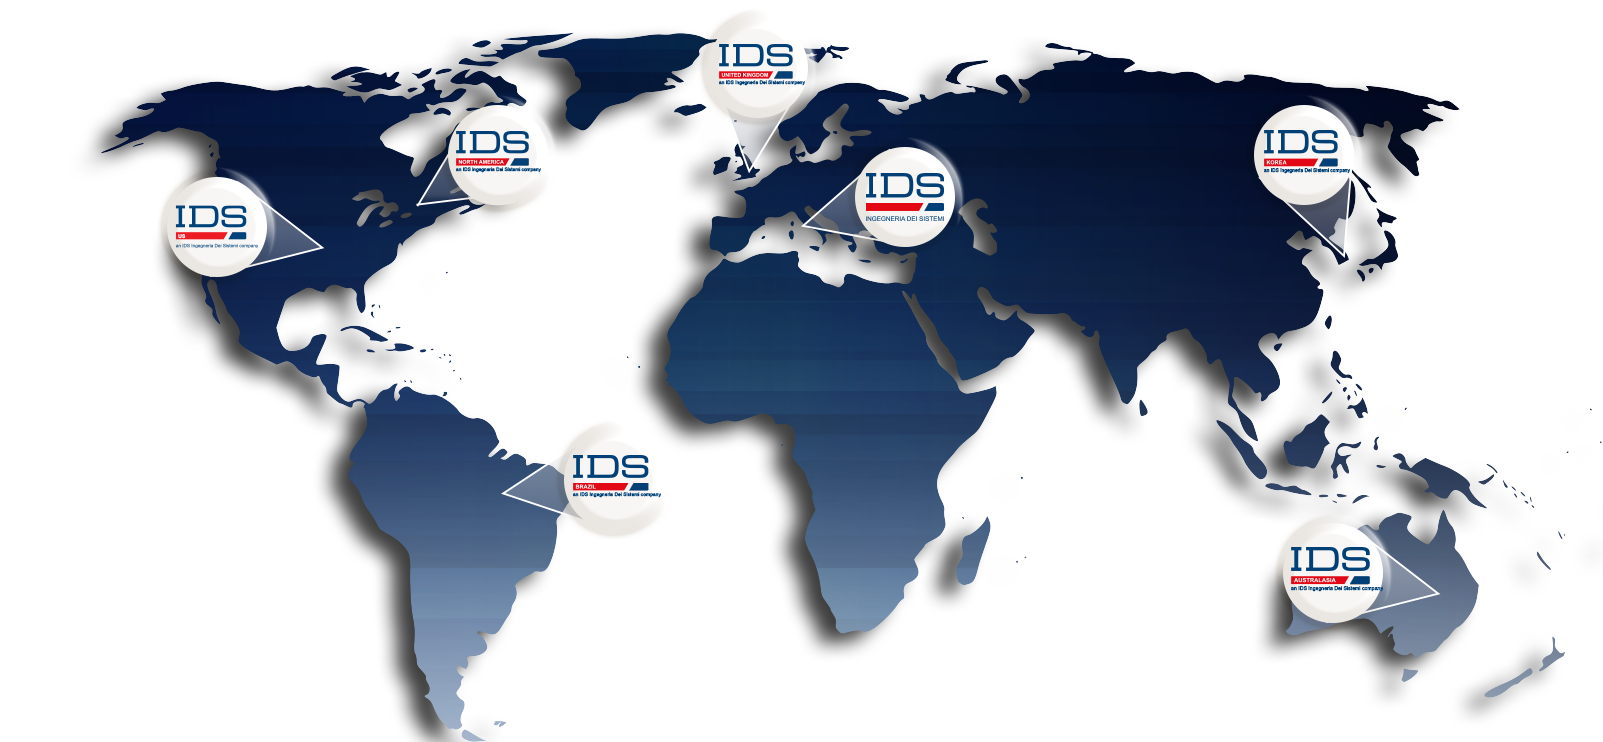 IDS_WORLD_SUBSIDIARIES_REV_1.1